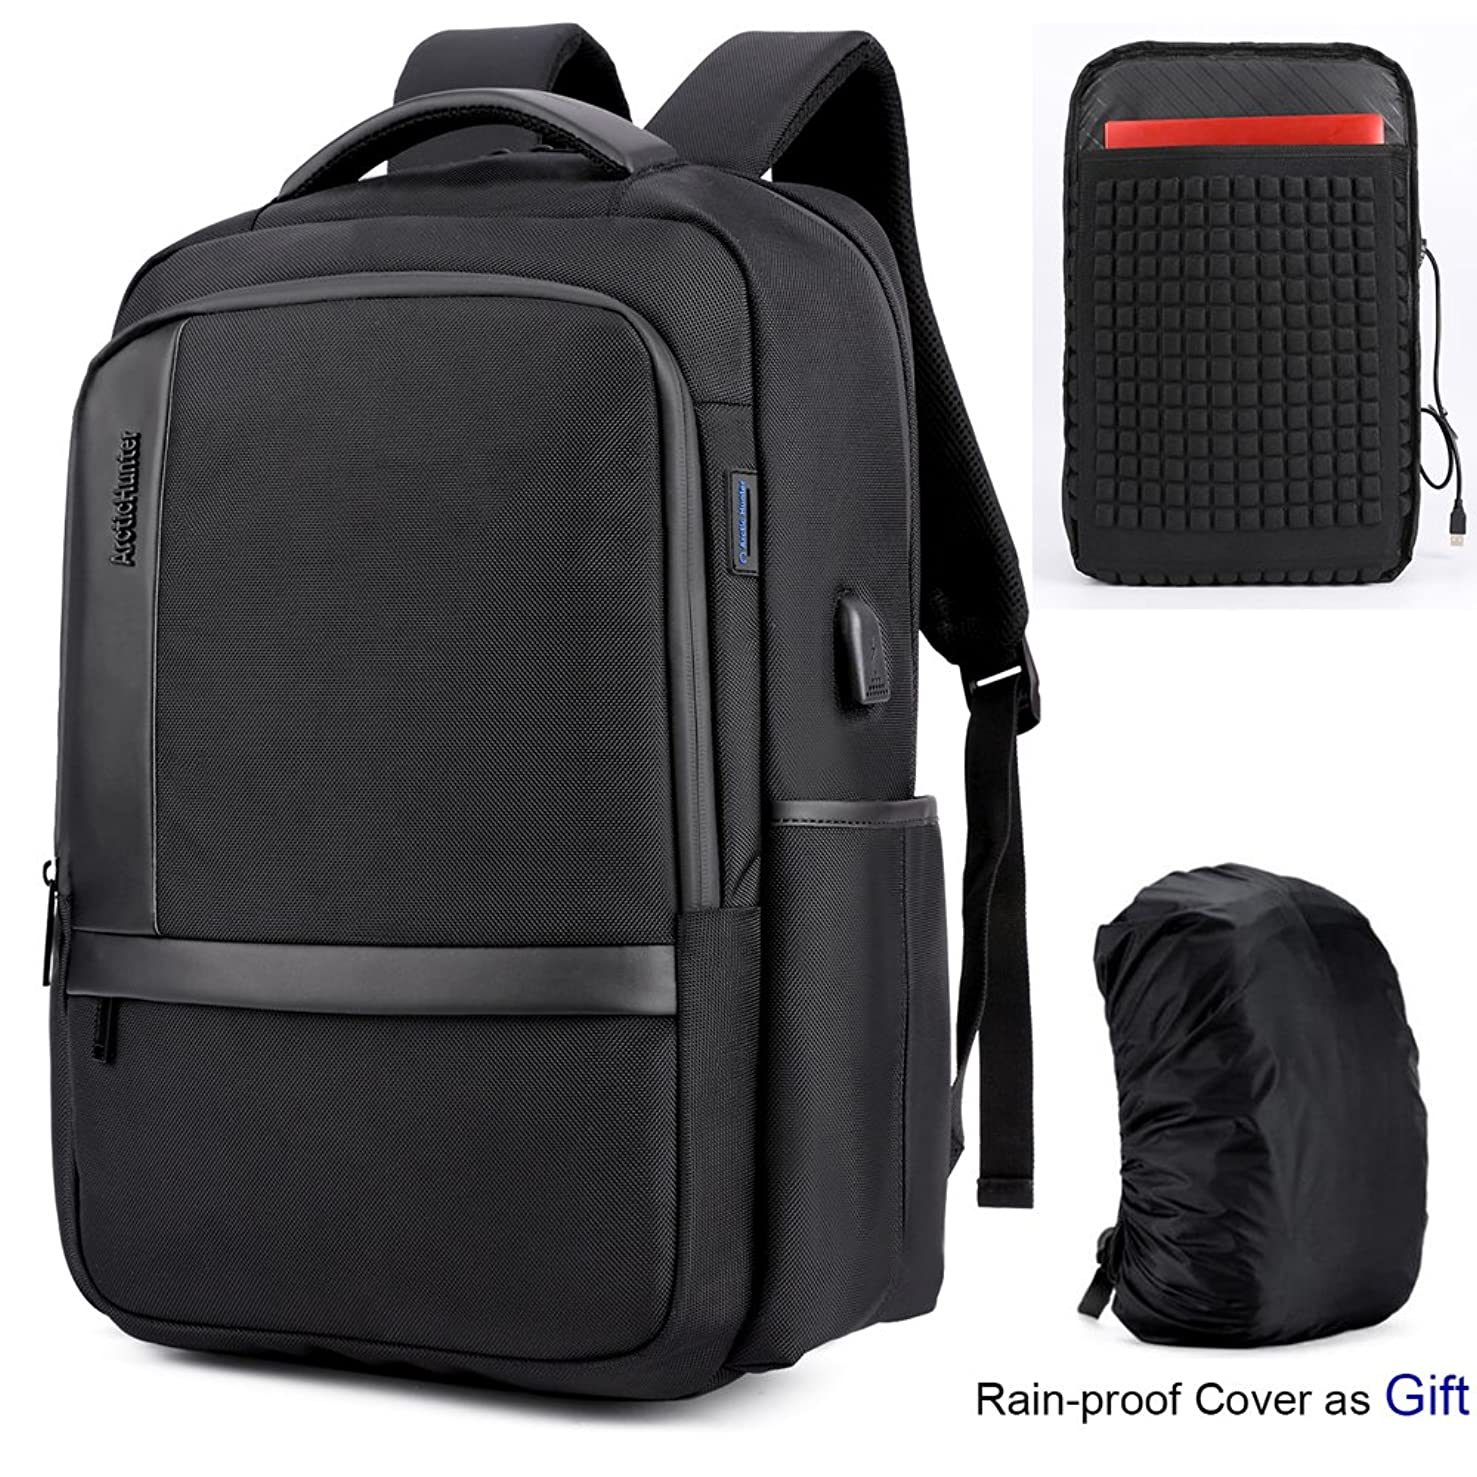 Business Laptop Backpack men water resistant&Anti-theft with USB charging port,office,casual,college school travel backpack,computer bag daypack,15.6 laptop leather professional slim black lightweight